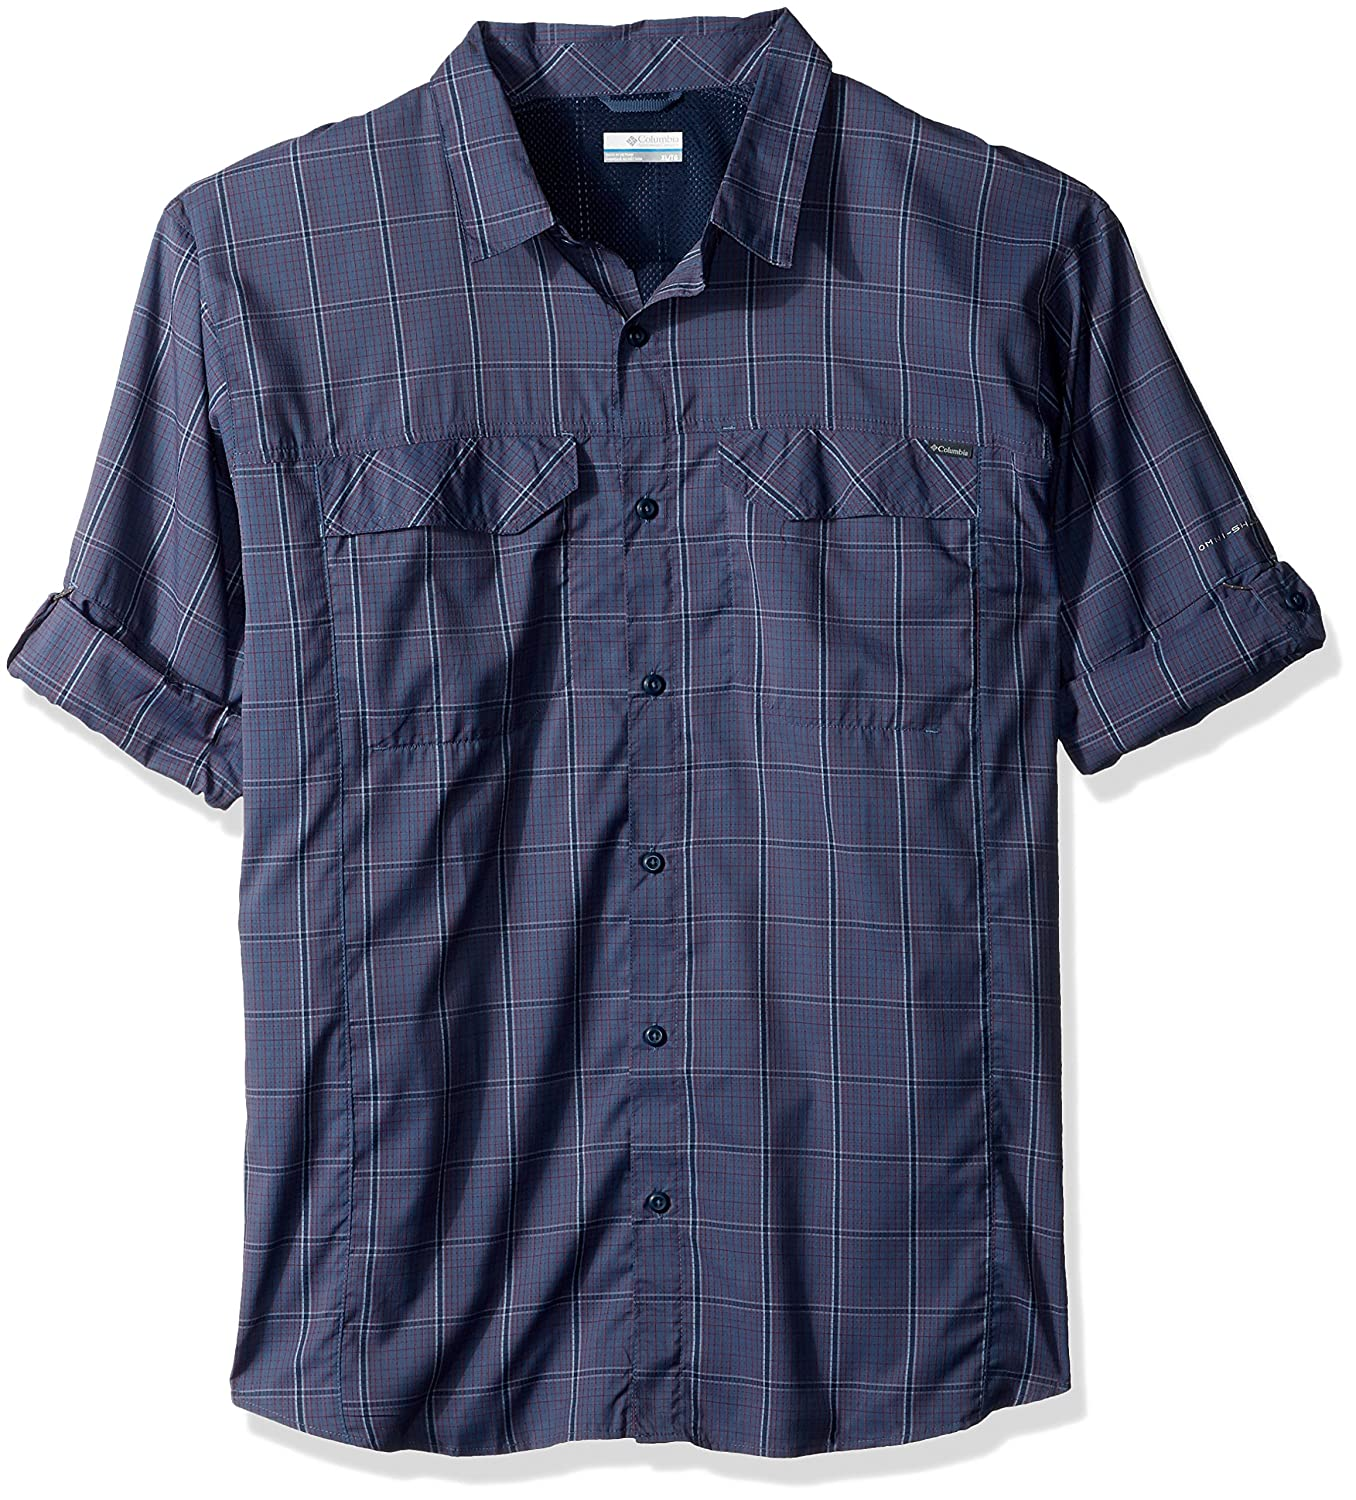 ca4e8de9afc The Silver Ridge Lite Plaid is a champion of the daily grind. It has the  classic look of a dress-casual button up, including flip closed chest  pockets.